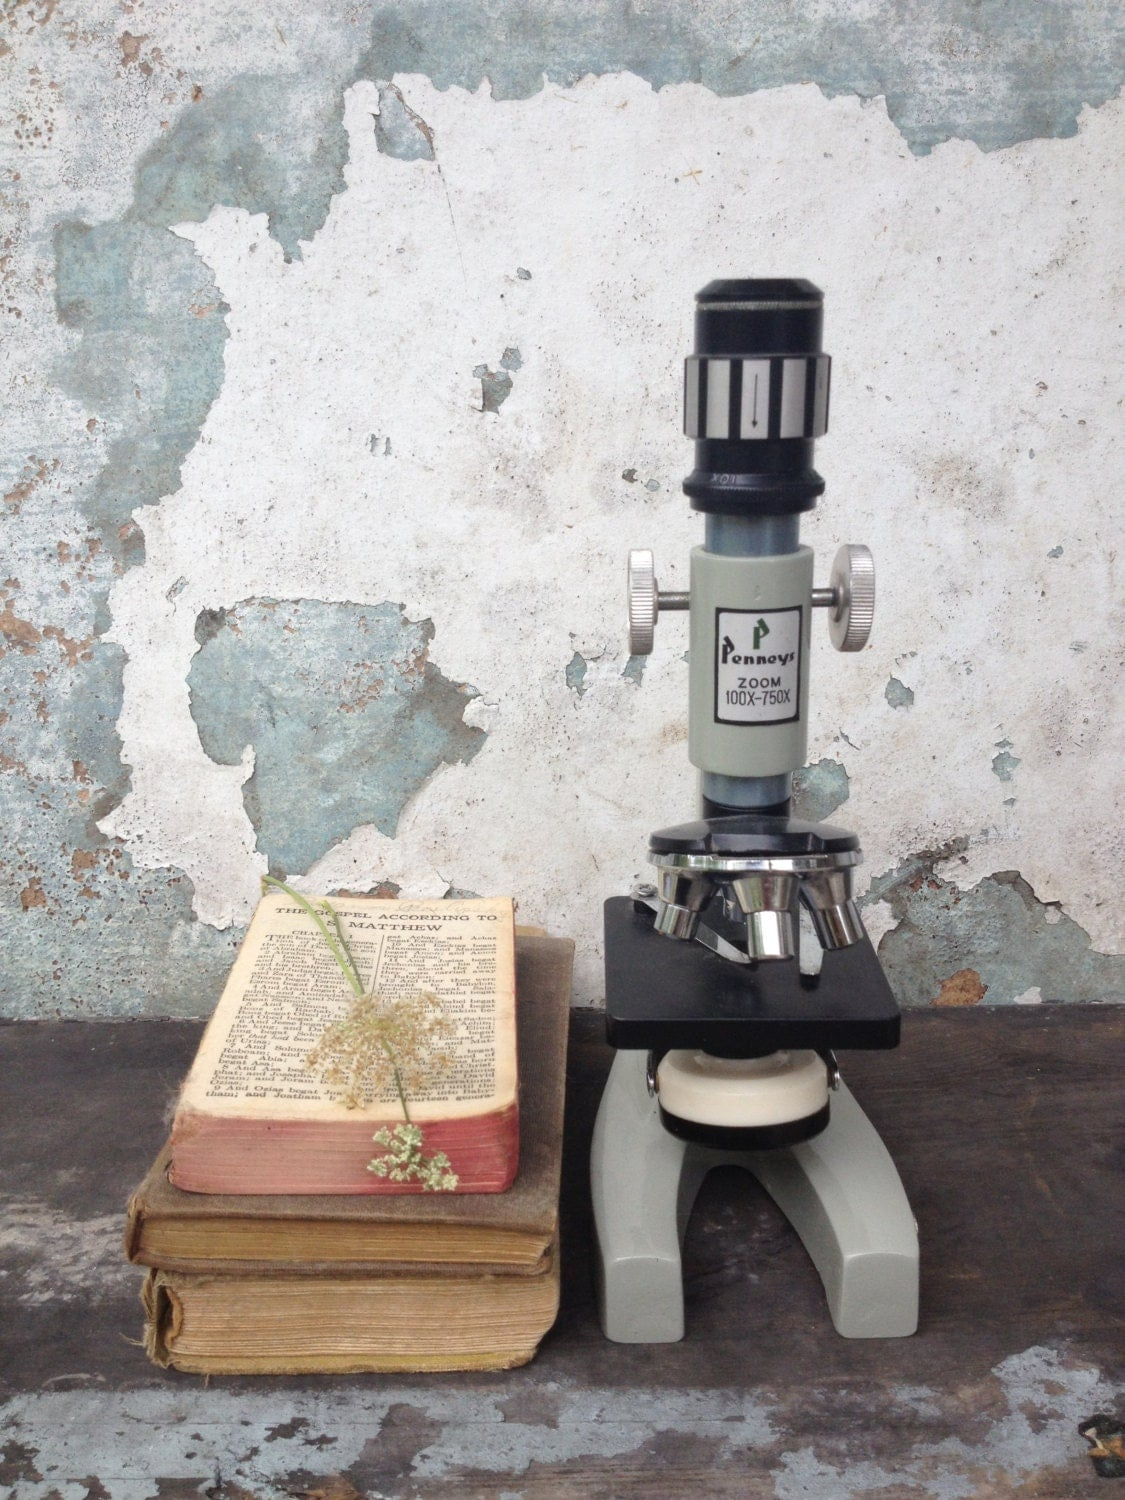 Vintage Microscope/Penney's/750/x/Scientific Decor/Industrial Decor - MarchHareMade